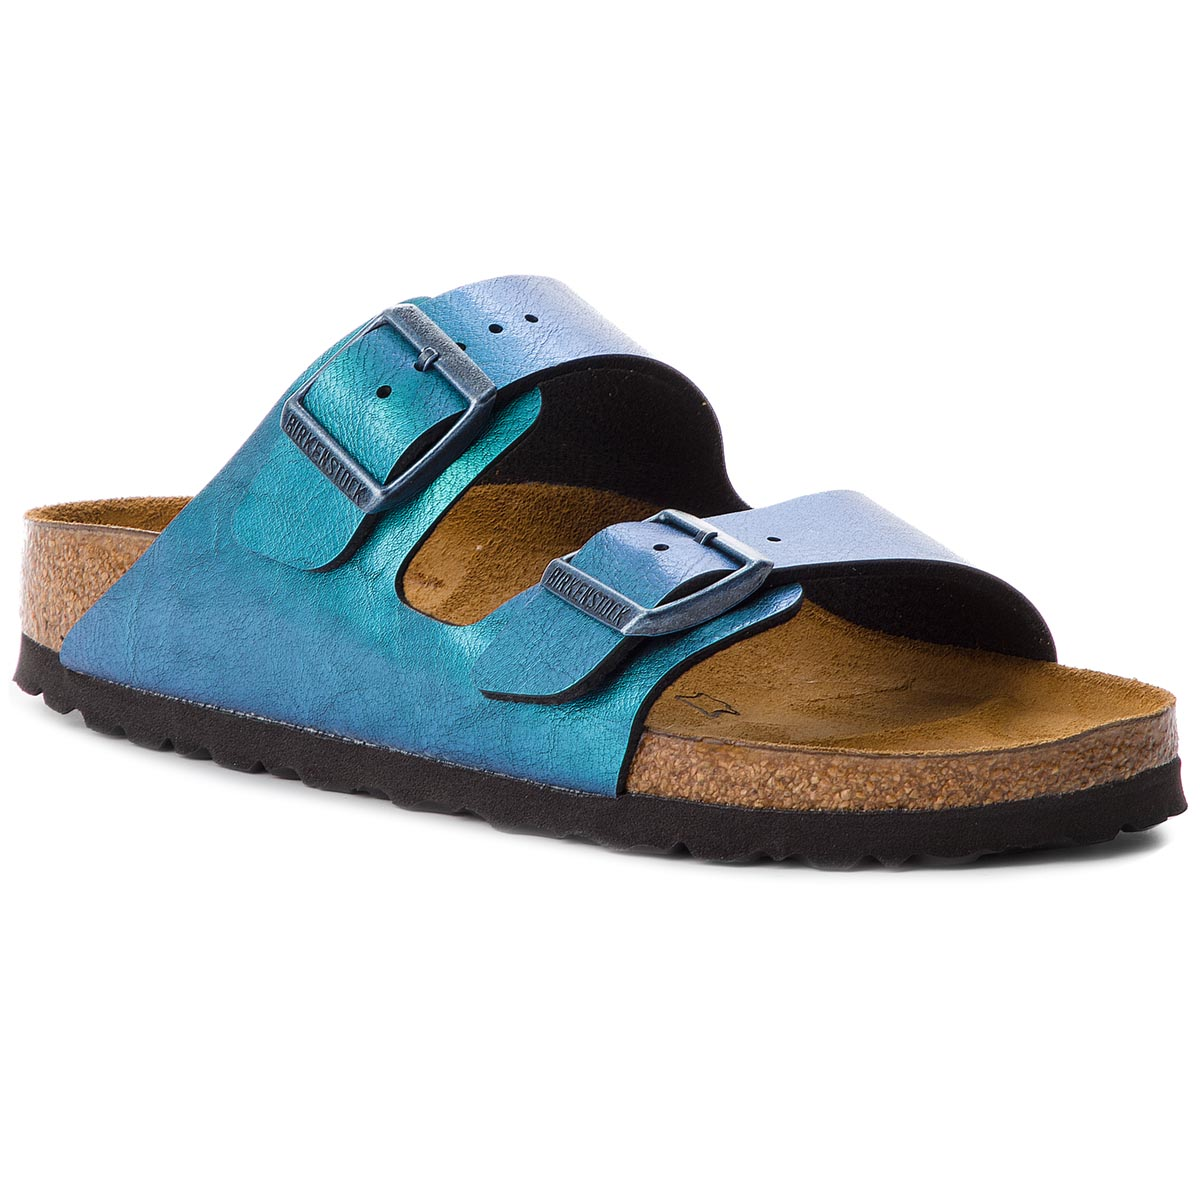 Klapki BIRKENSTOCK - Arizona Bs 1012393  Graceful Gemm Blue